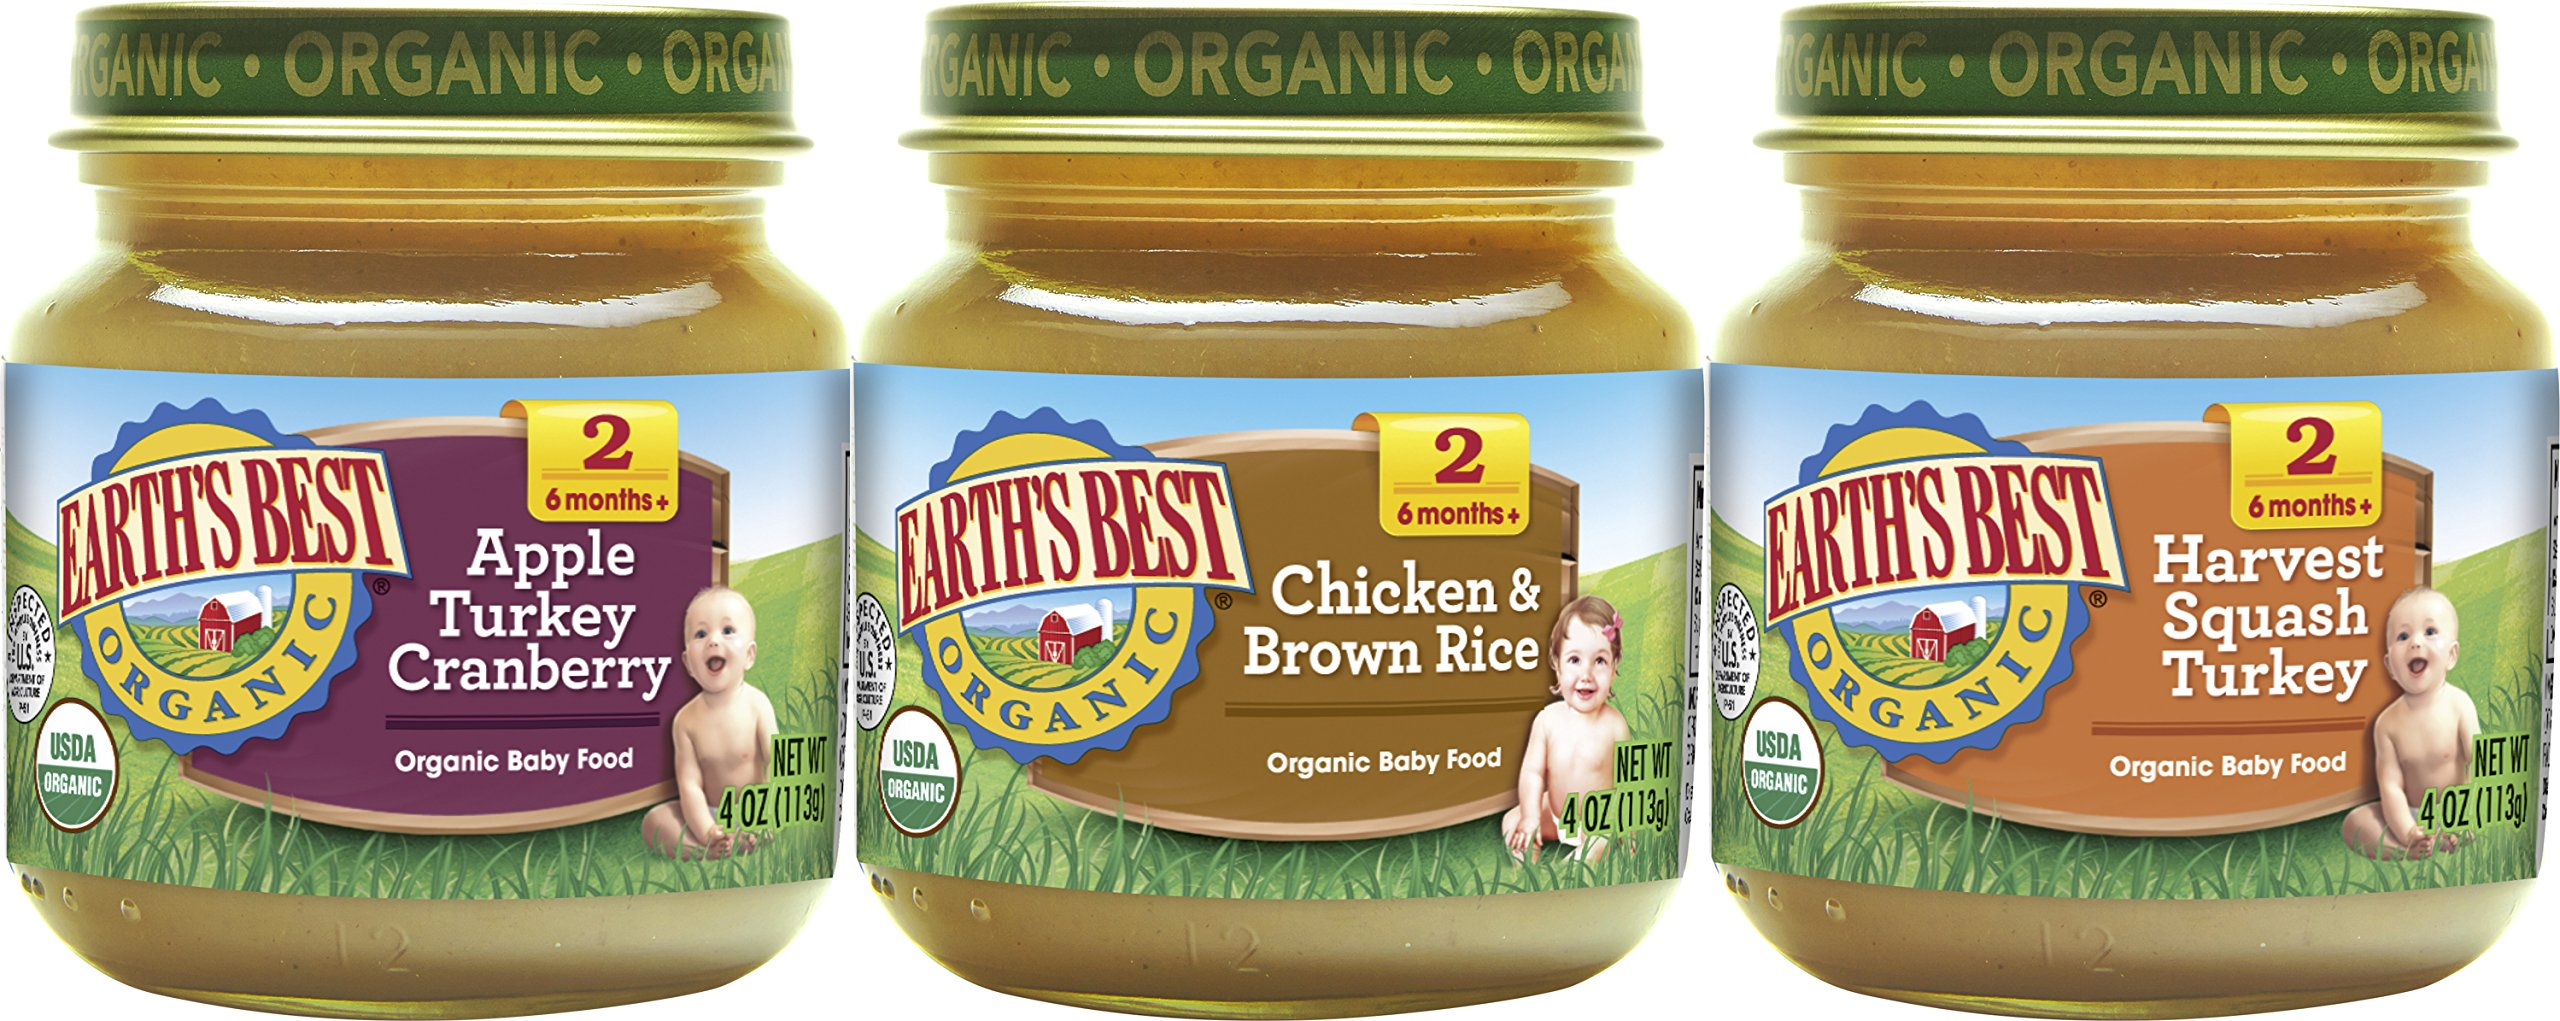 Earth's Best Organic Stage 2 Baby Food, Dinner Favorites Variety Pack (Apple Turkey & Cranberry, Chicken & Brown Rice, Harvest Squash & Turkey), 4 Ounce Jars, Pack of 12